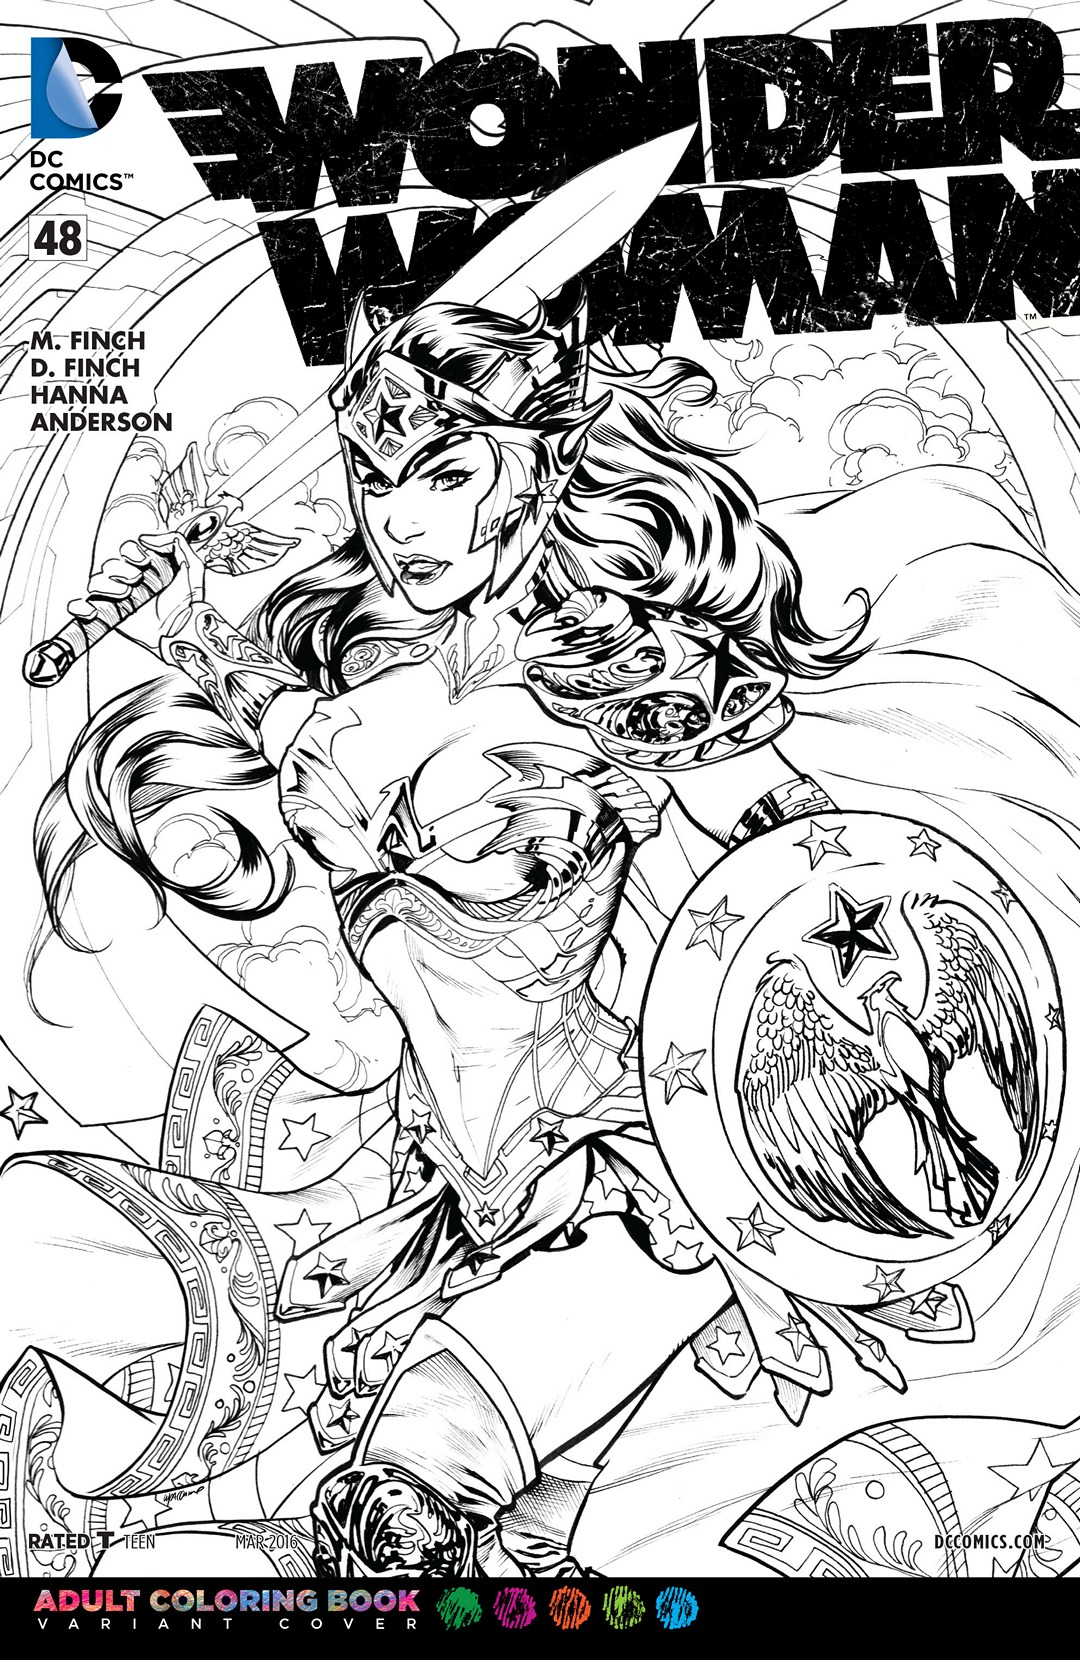 Image - Wonder Woman Vol 4 48 Adult Coloring Book Variant.jpg | DC ...